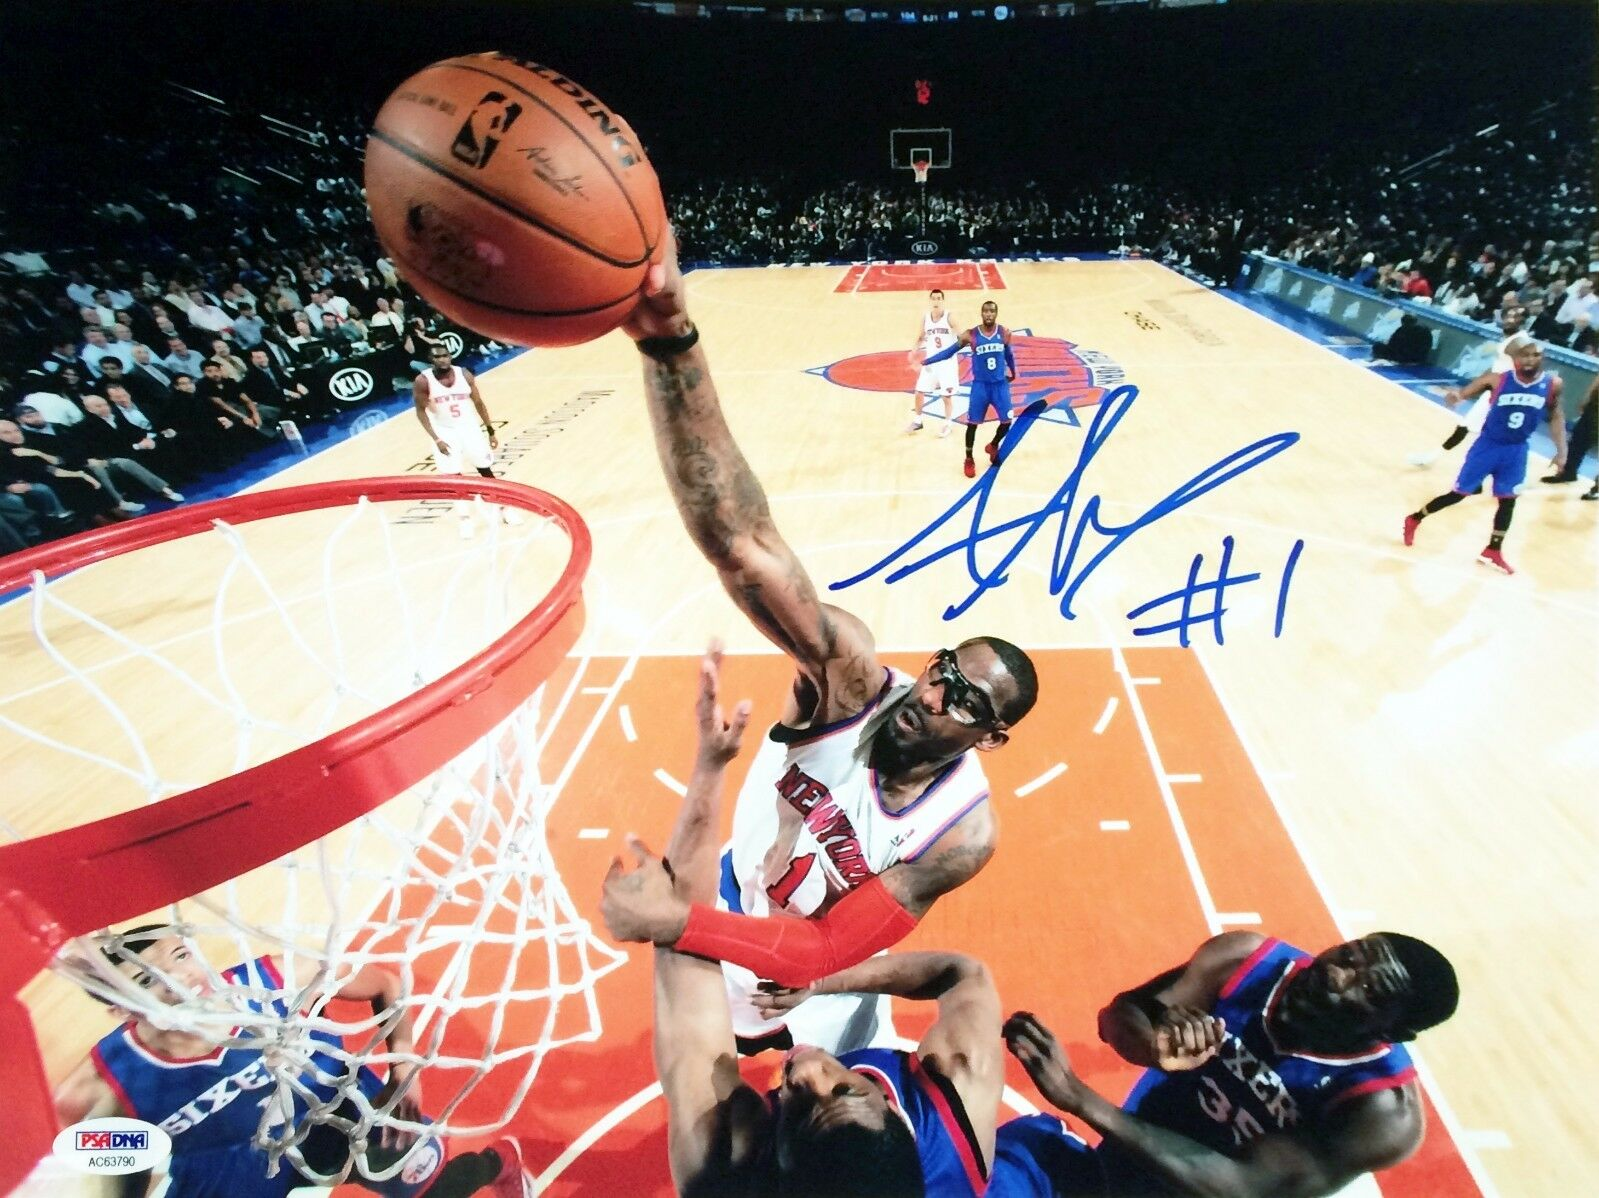 Amare Stoudemire New York Knicks Signed 11x14 photo PSA/DNA Cert # AC 63790